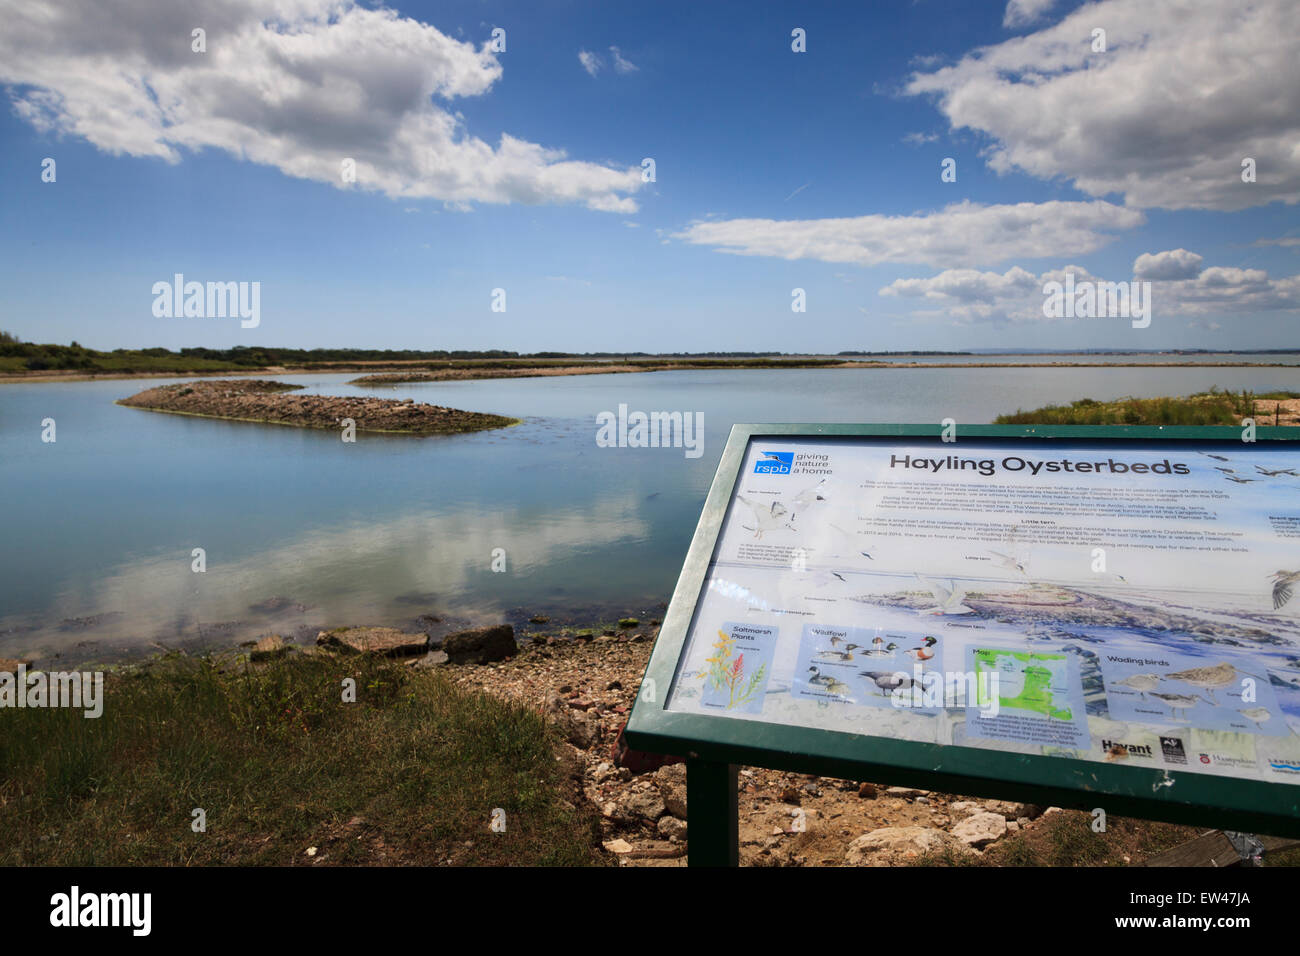 Hayling Island old disused Oyster Beds with information sign about wading birds and wildfowl Stock Photo